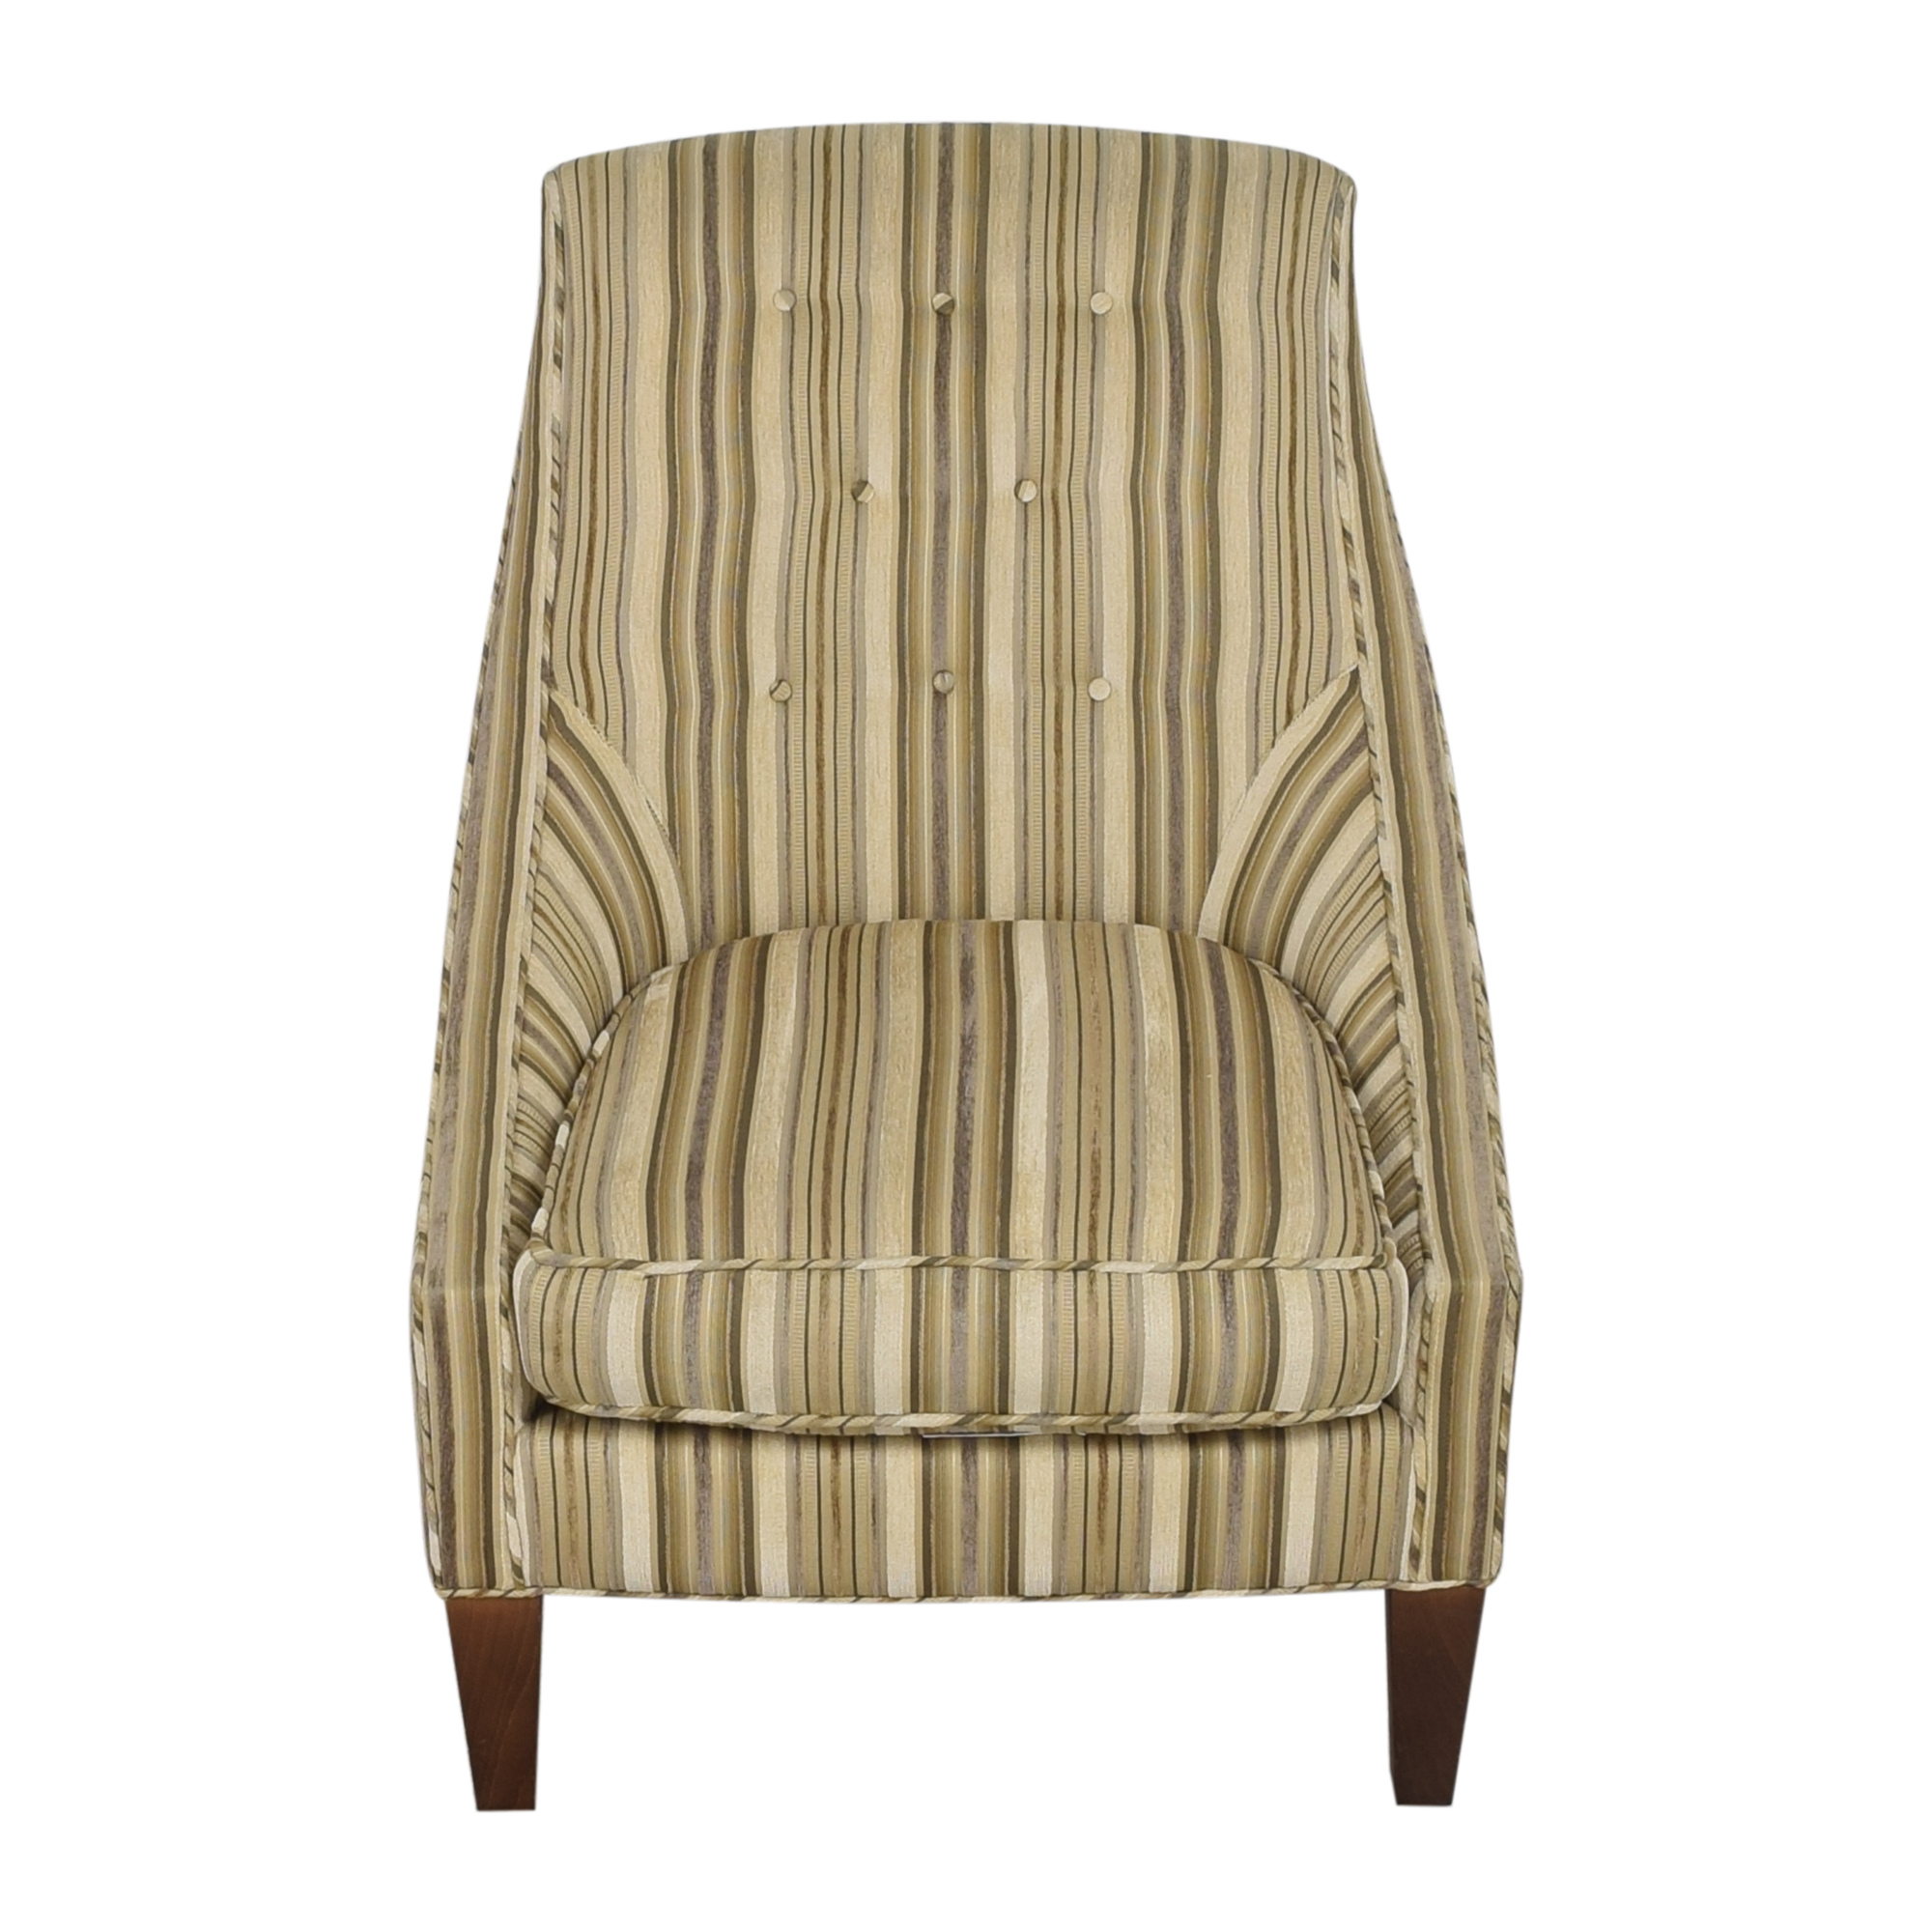 Lillian August Lillian August Accent Chair used